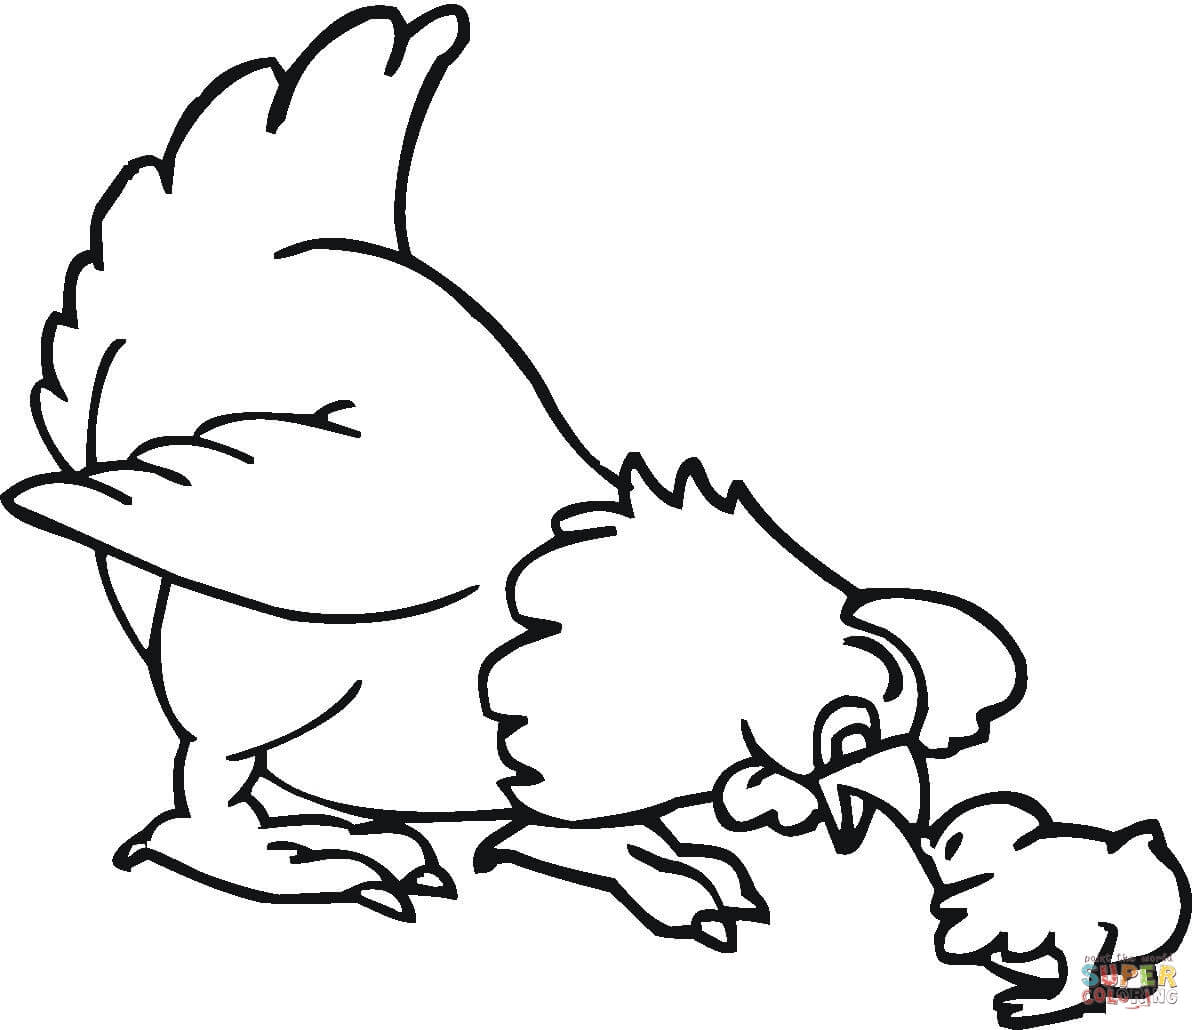 Cute chicken clipart black and white 2 » Clipart Station.